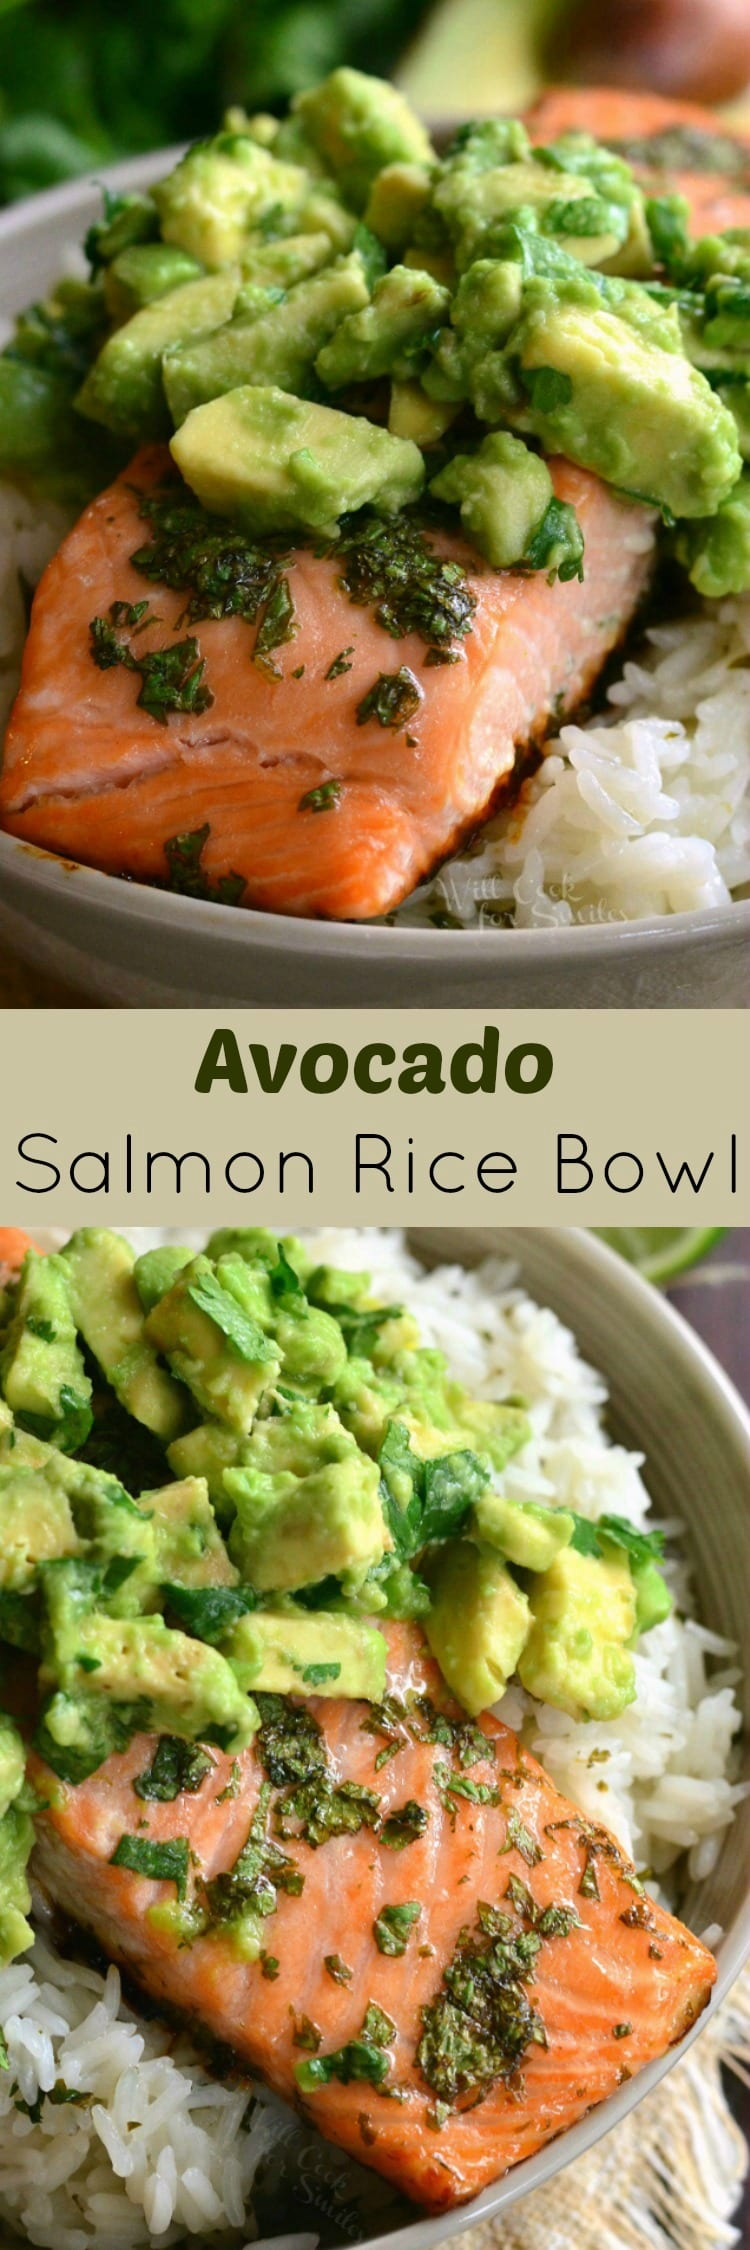 collage top photo is salmon with avocado on top with rice in a bowl and bottom is top view of salmon over rice with avocado